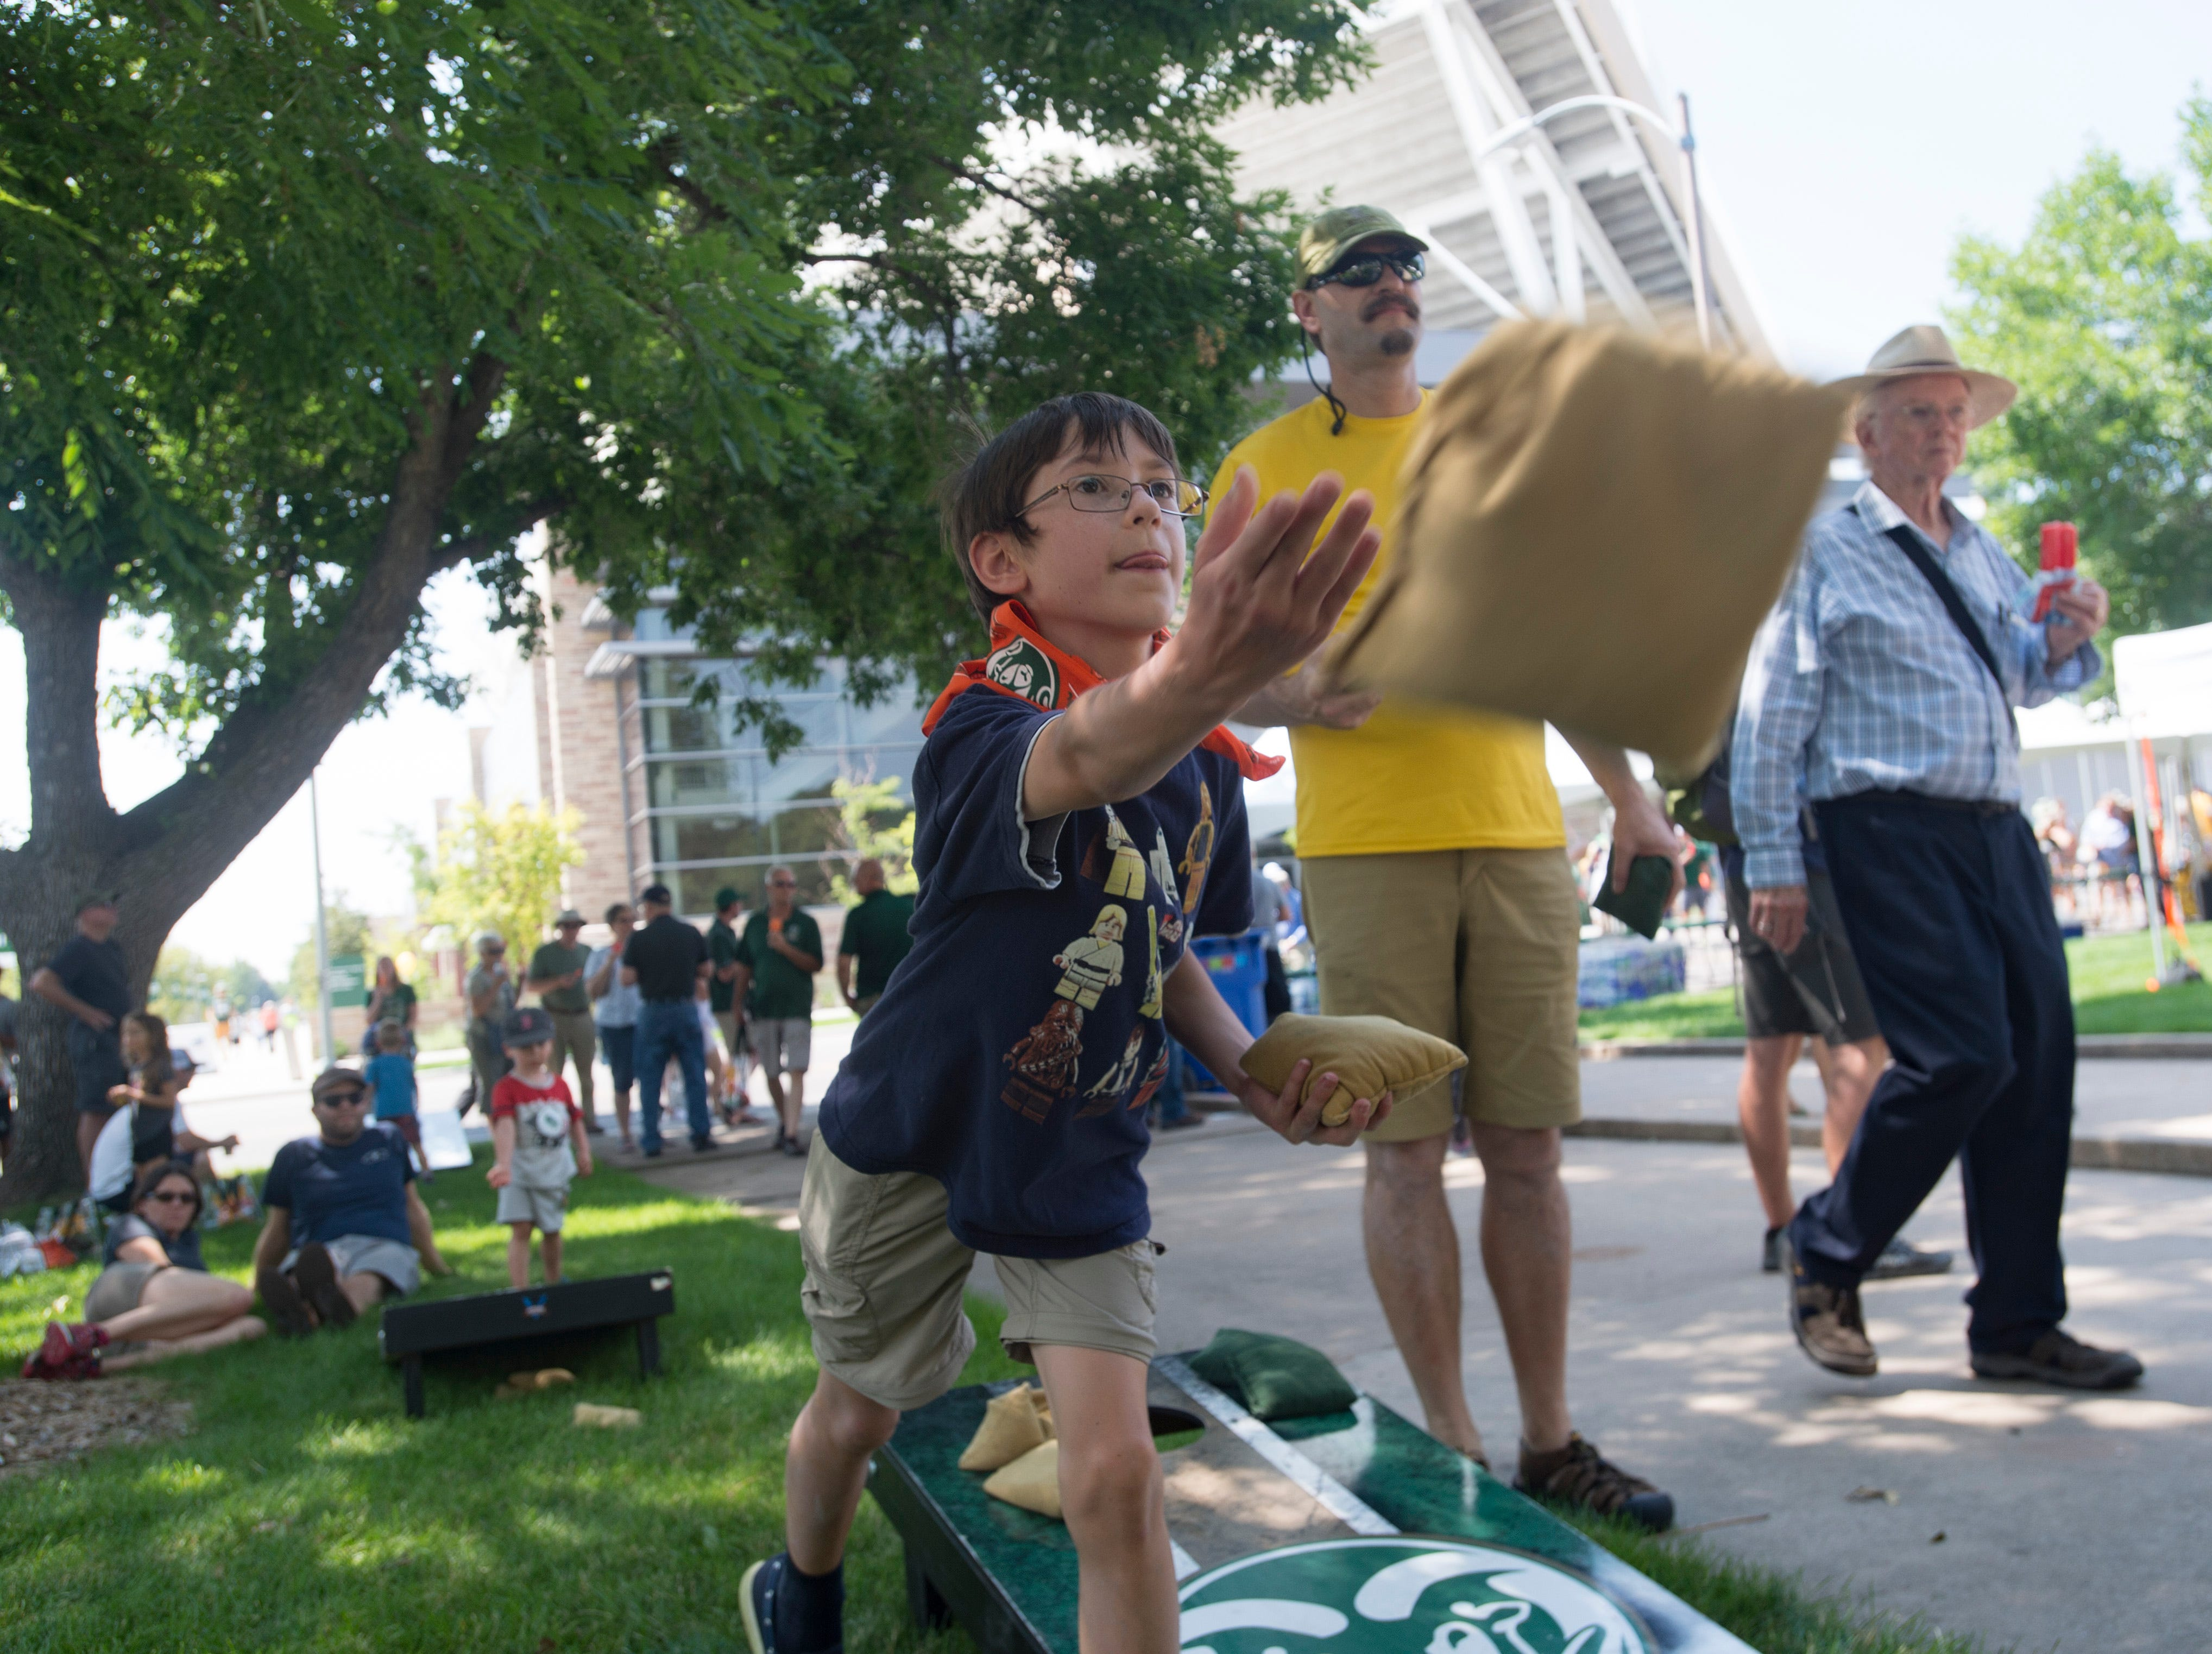 Rams fan Silas Malers, 11, plays a game of corn hole with his father, Steve, during an open house and scrimmage hosted by the Rams outside of Canvas Stadium on Saturday, August 4, 2018.